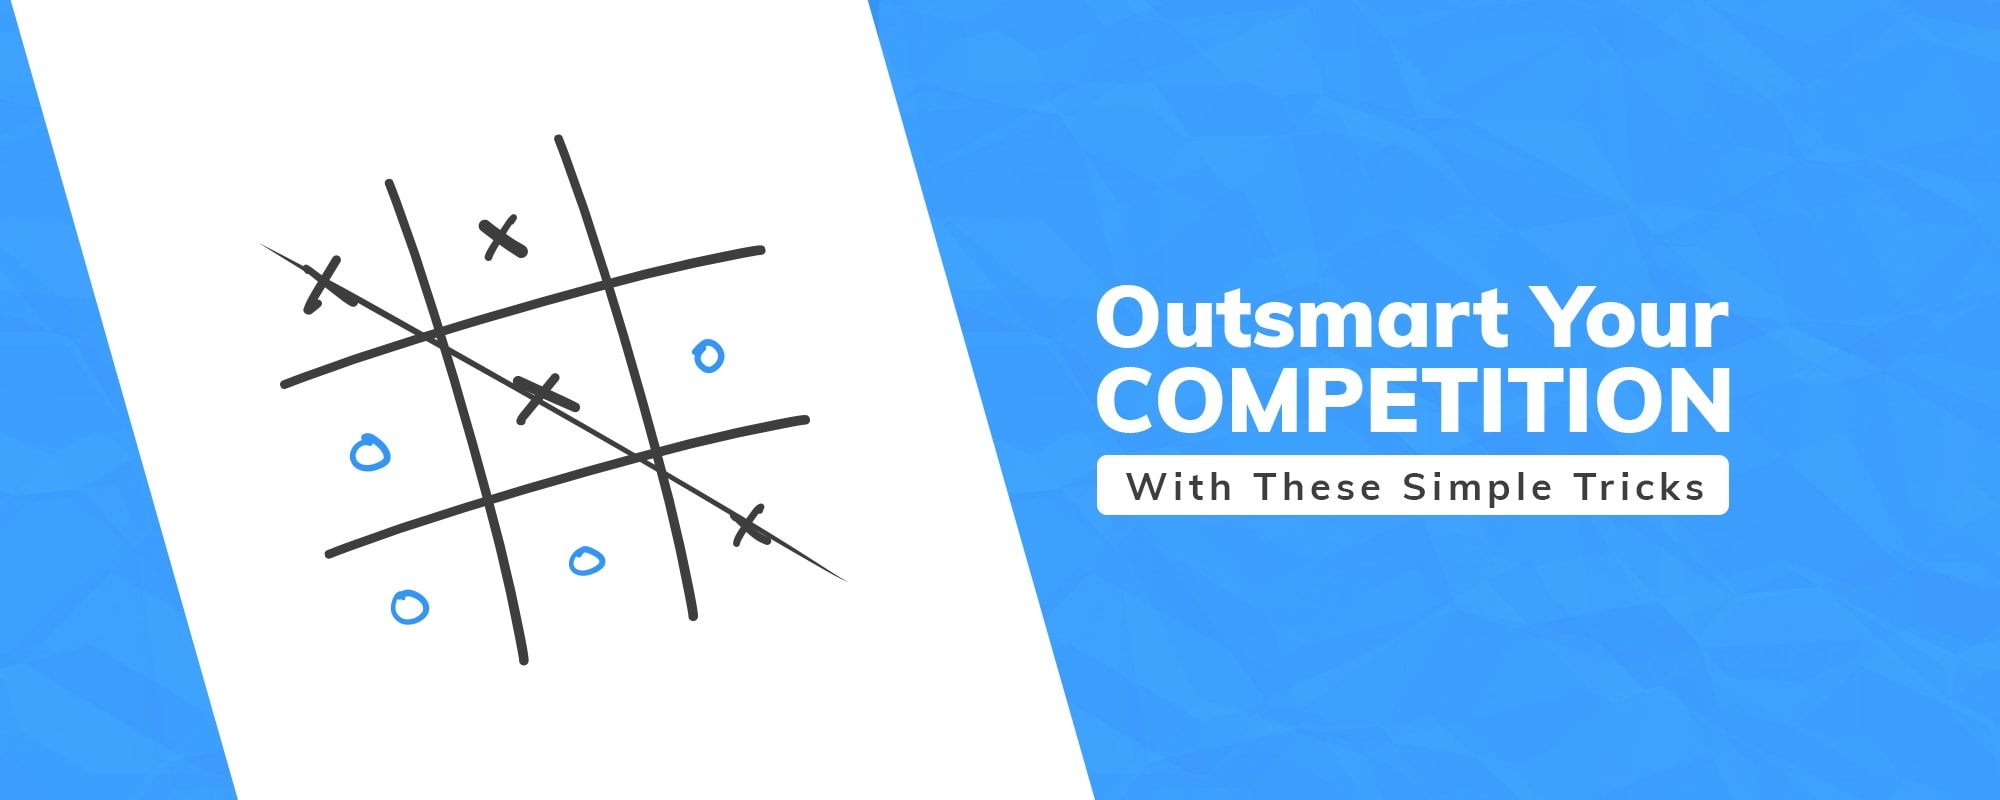 How to Outsmart Your Competitors With Simple E-Commerce Tricks